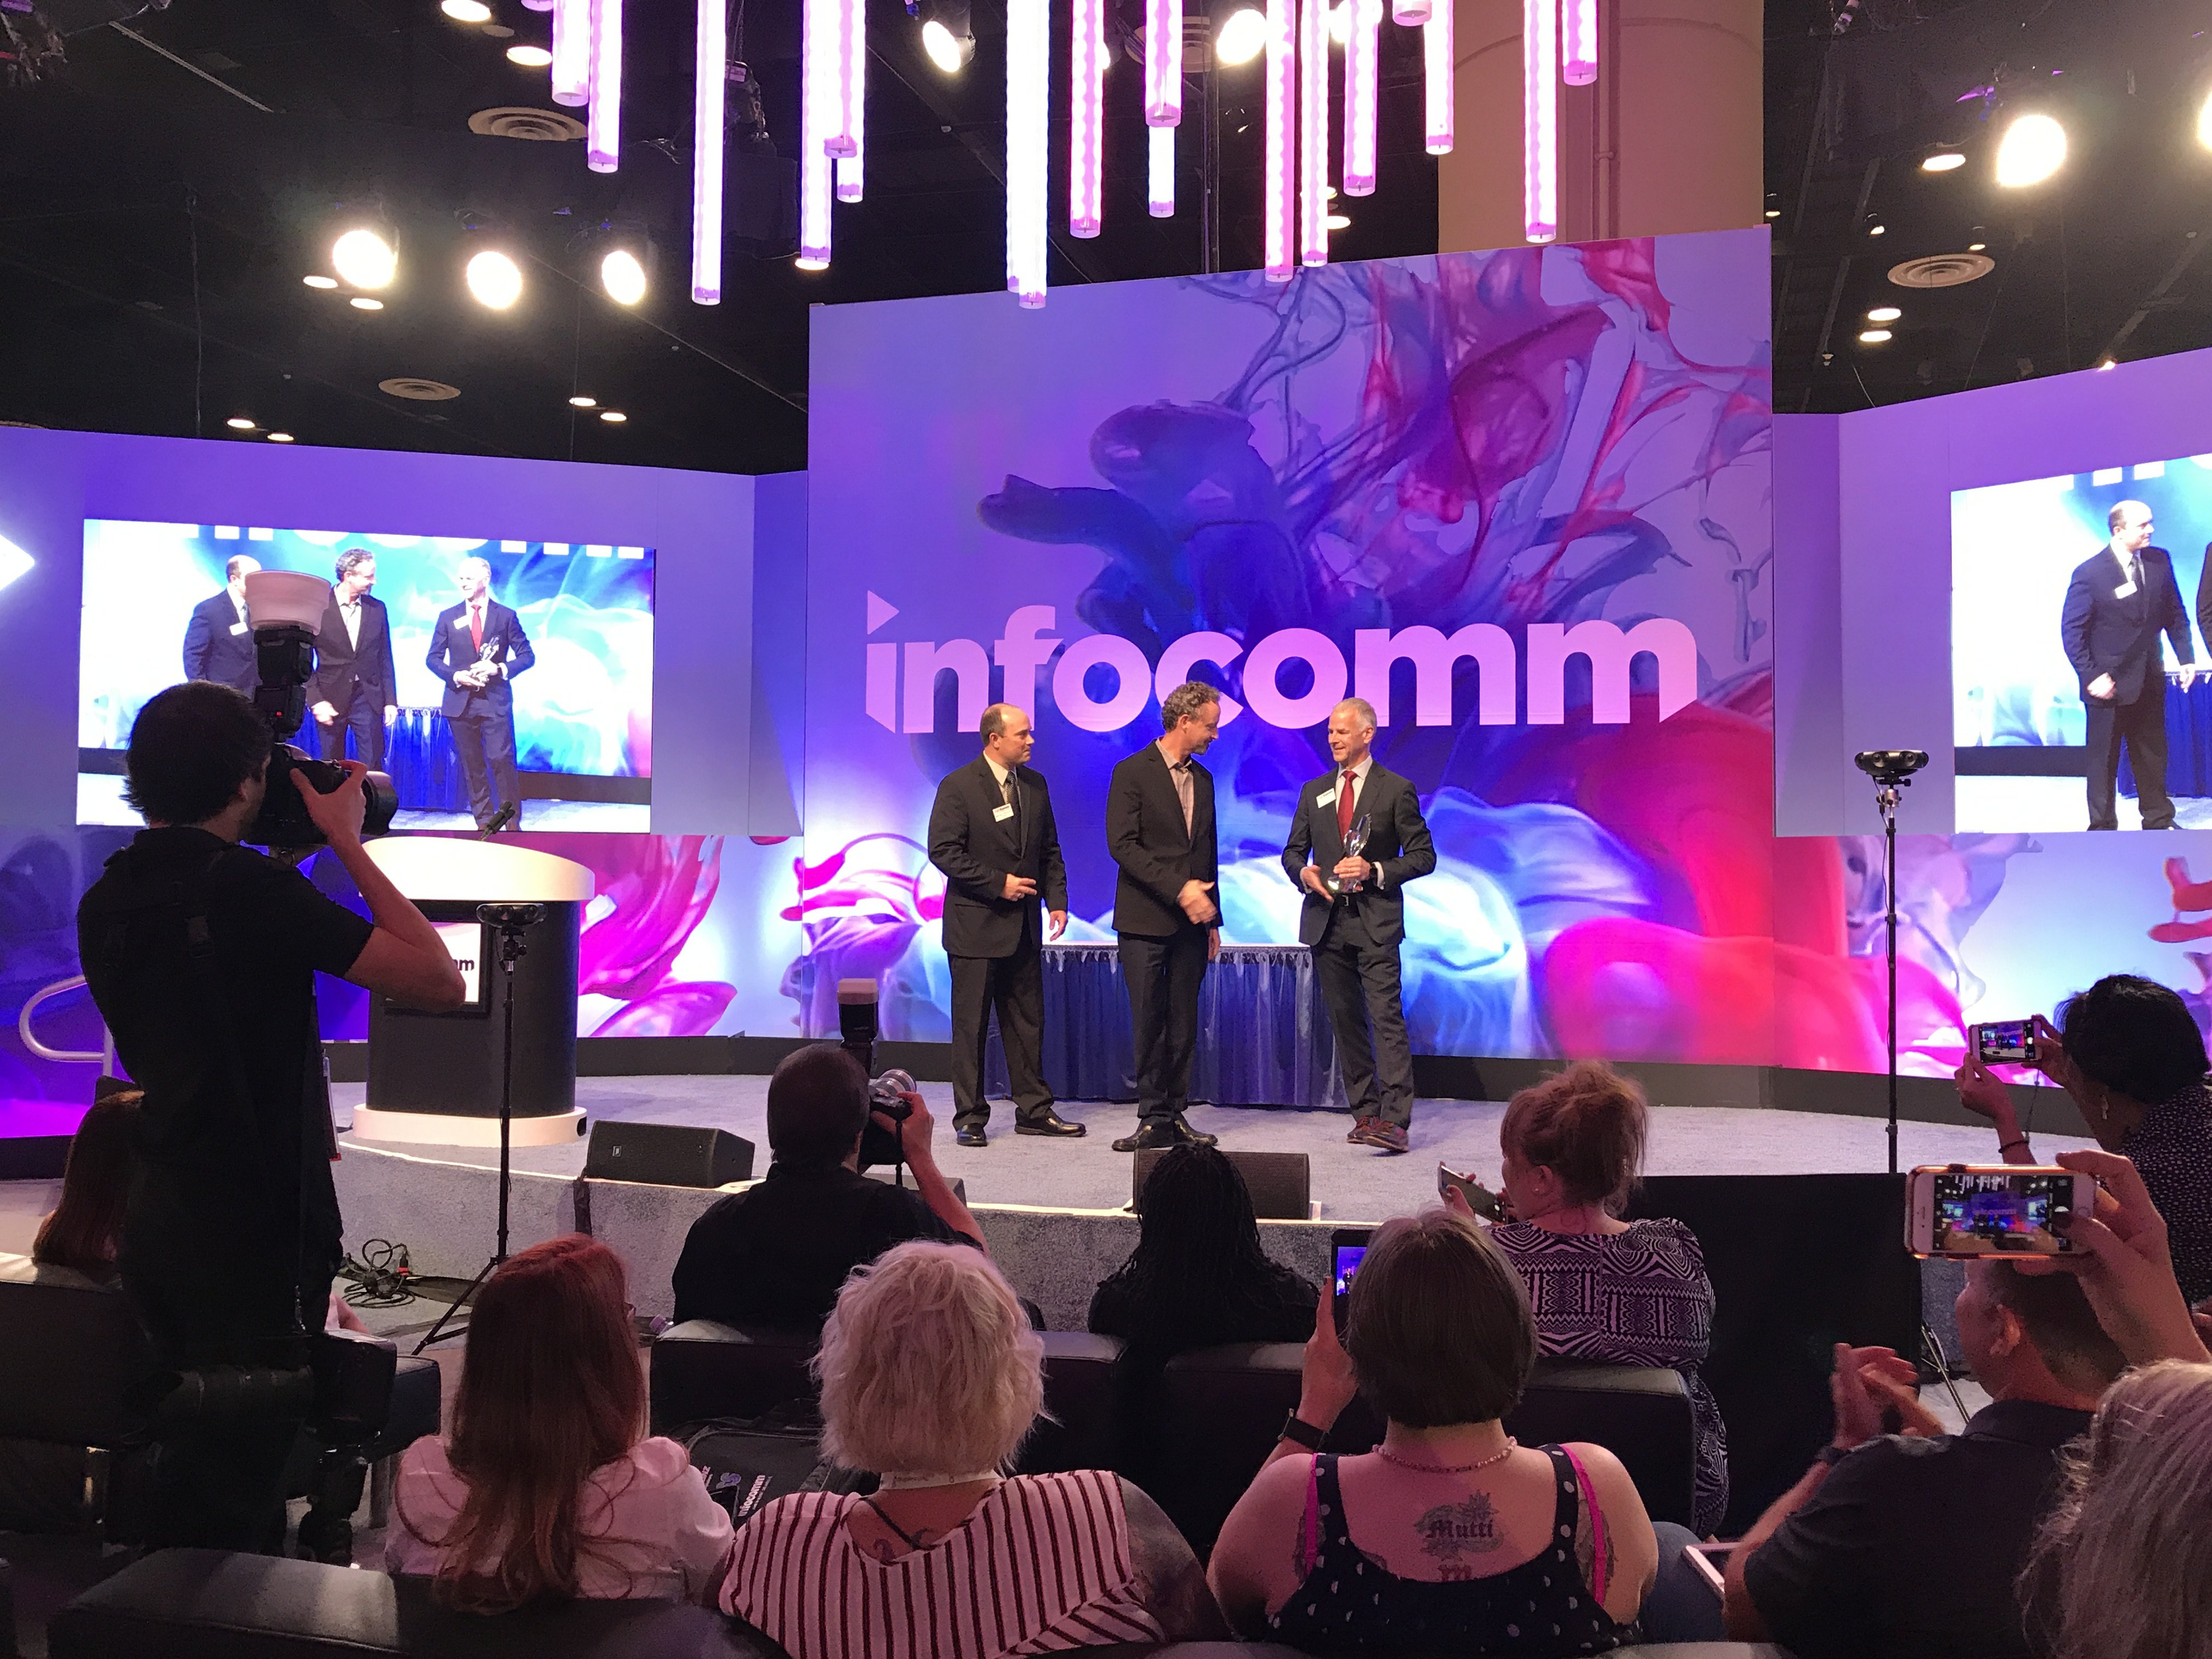 InfoComm 2017 Center Stage with three men on stage (background)